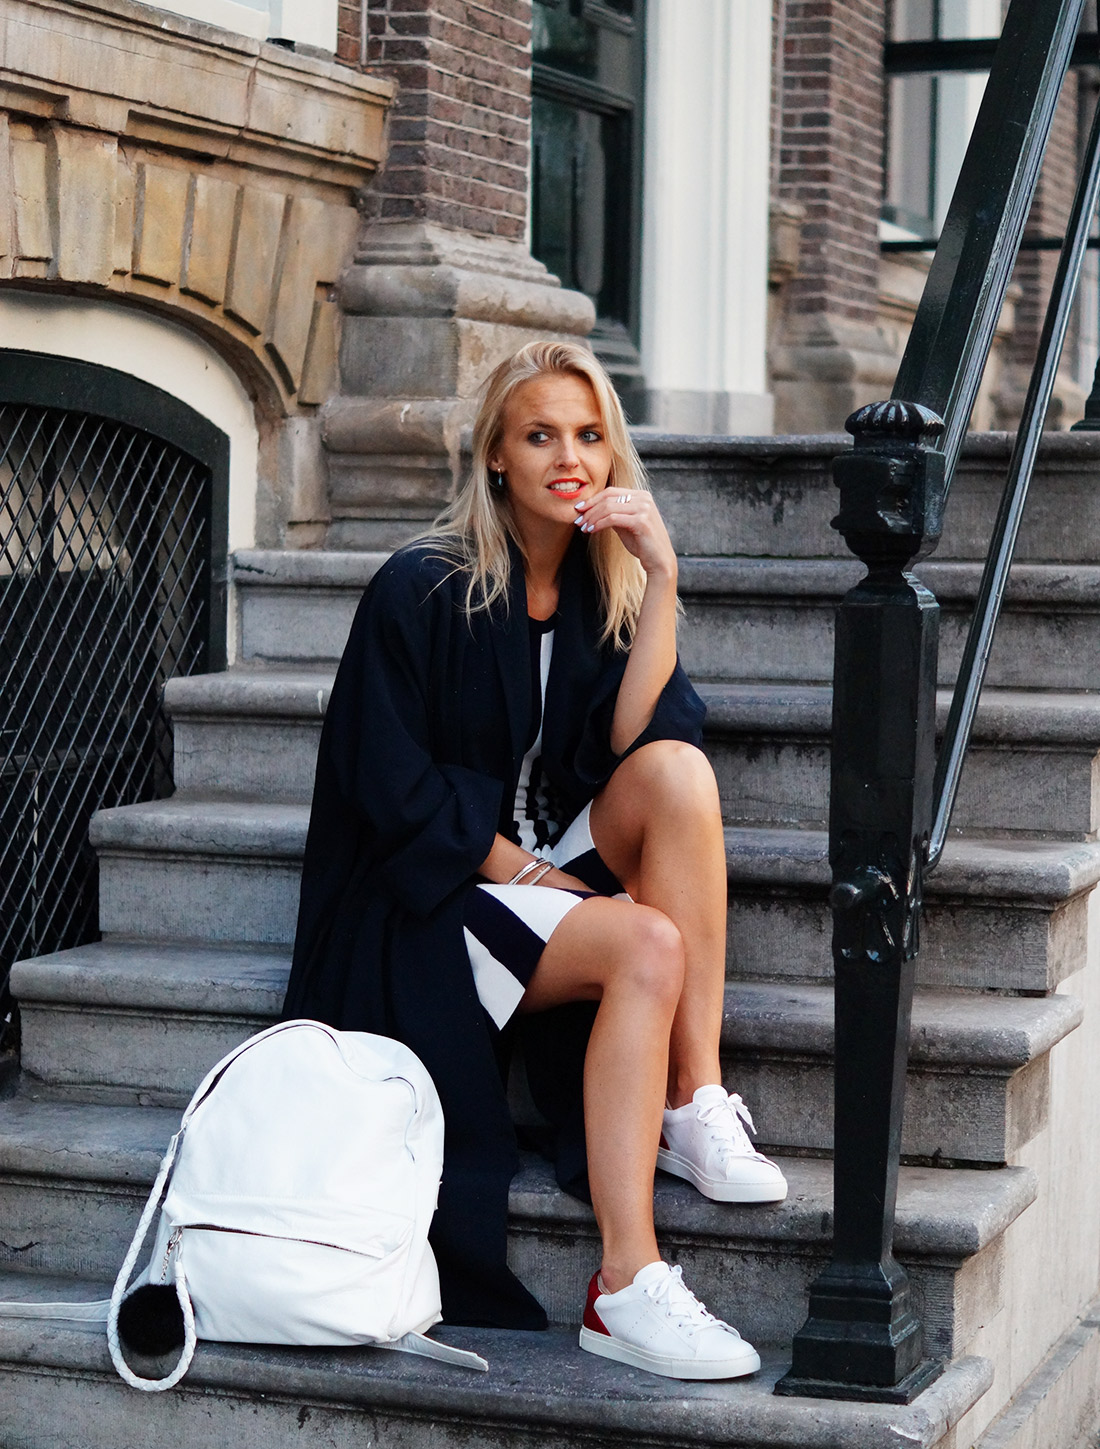 Bag-at-You---Fashion-blog---Hip-E-bags---White-backpack---Amsterdam-style-blogger